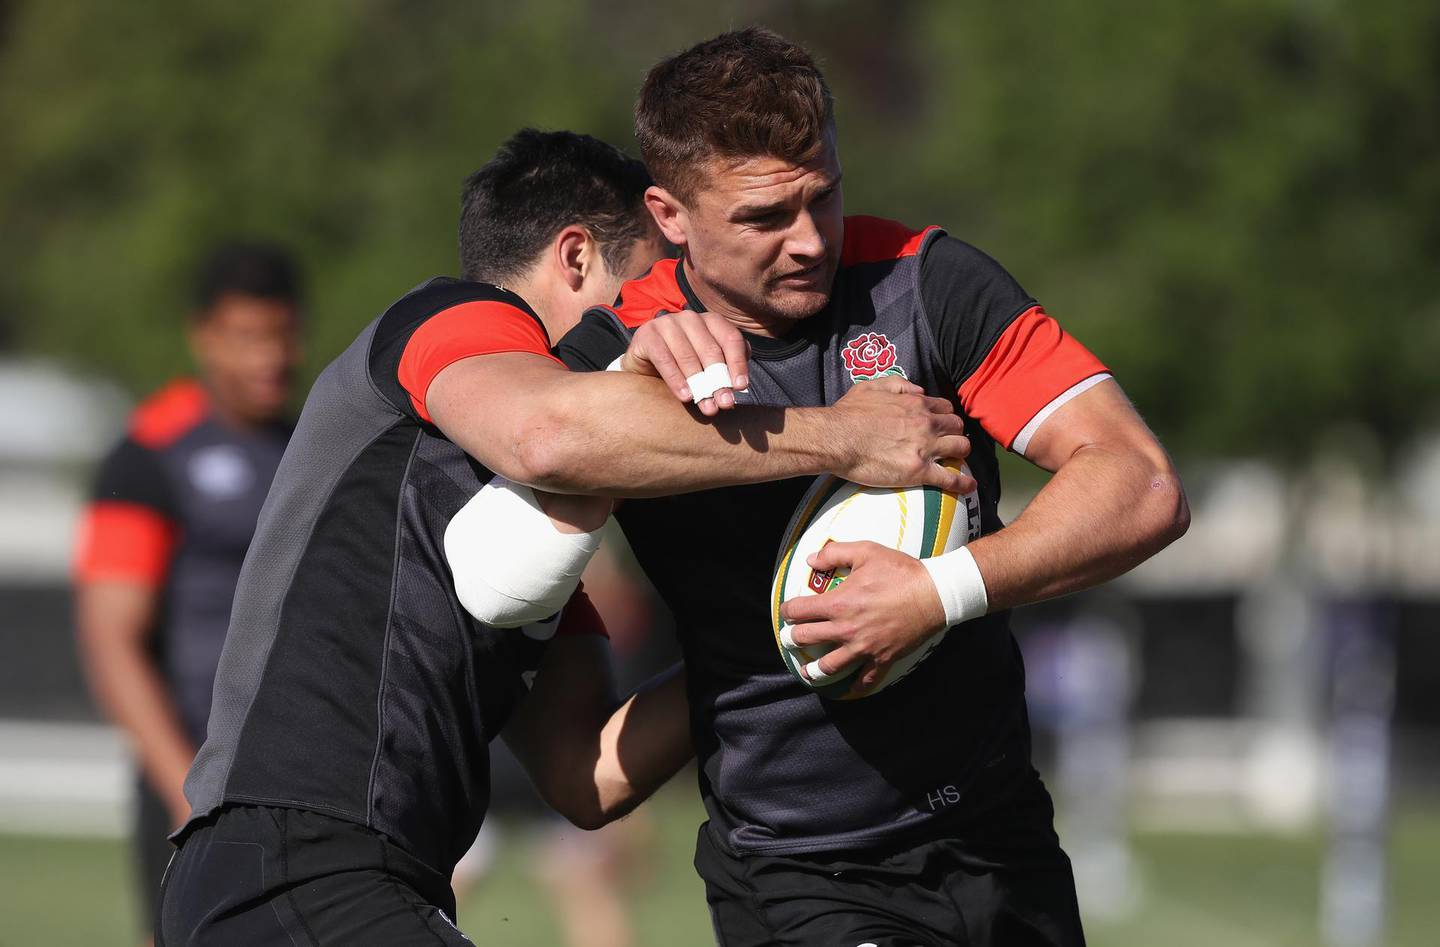 DURBAN, SOUTH AFRICA - JUNE 05:  Henry Slade is tackled by Alex Lozowski during the England training session held at Kings Park Stadium on June 5, 2018 in Durban, South Africa.  (Photo by David Rogers/Getty Images)